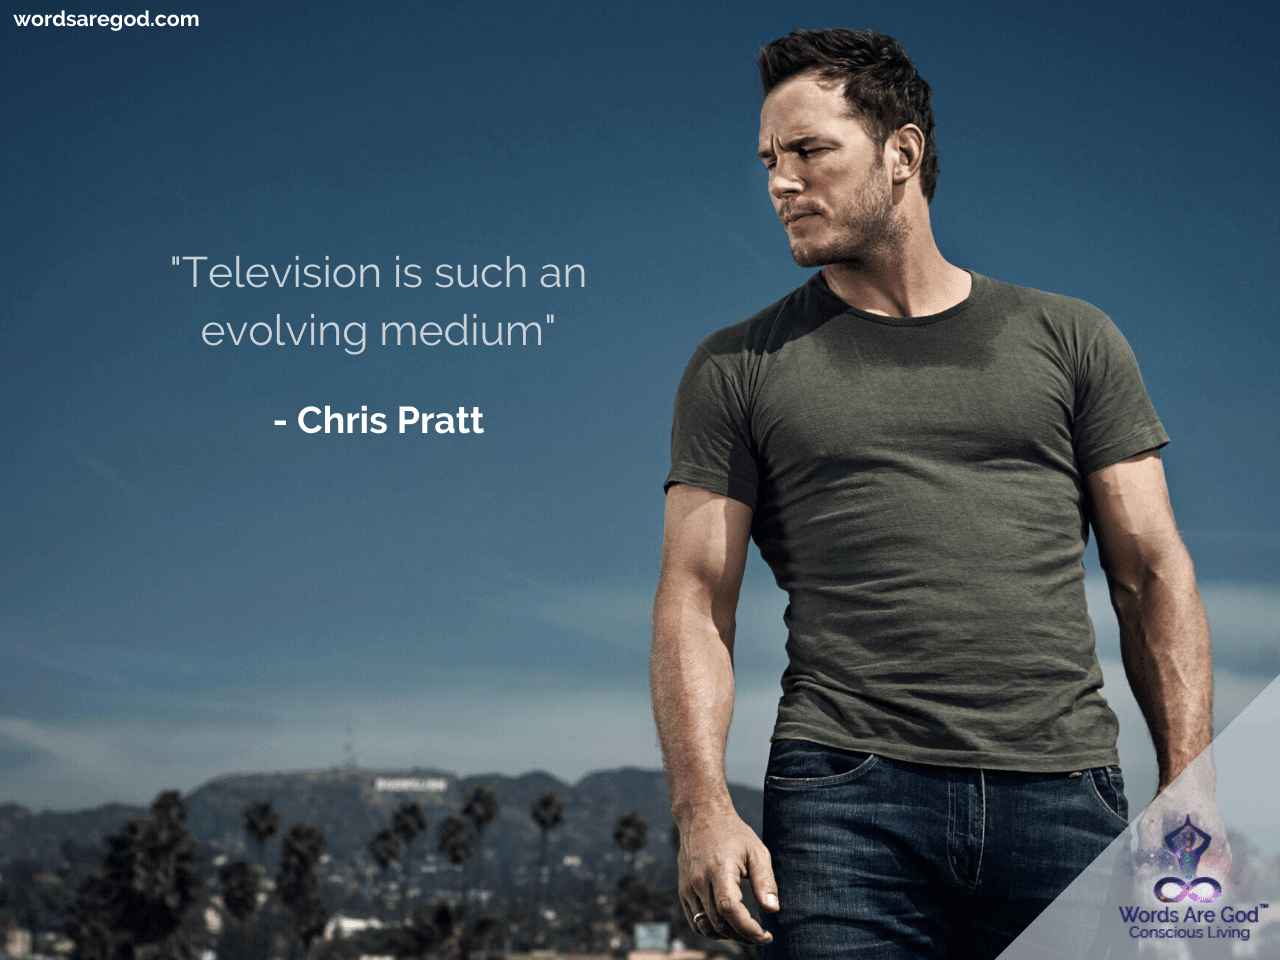 Chris Pratt Life Quote